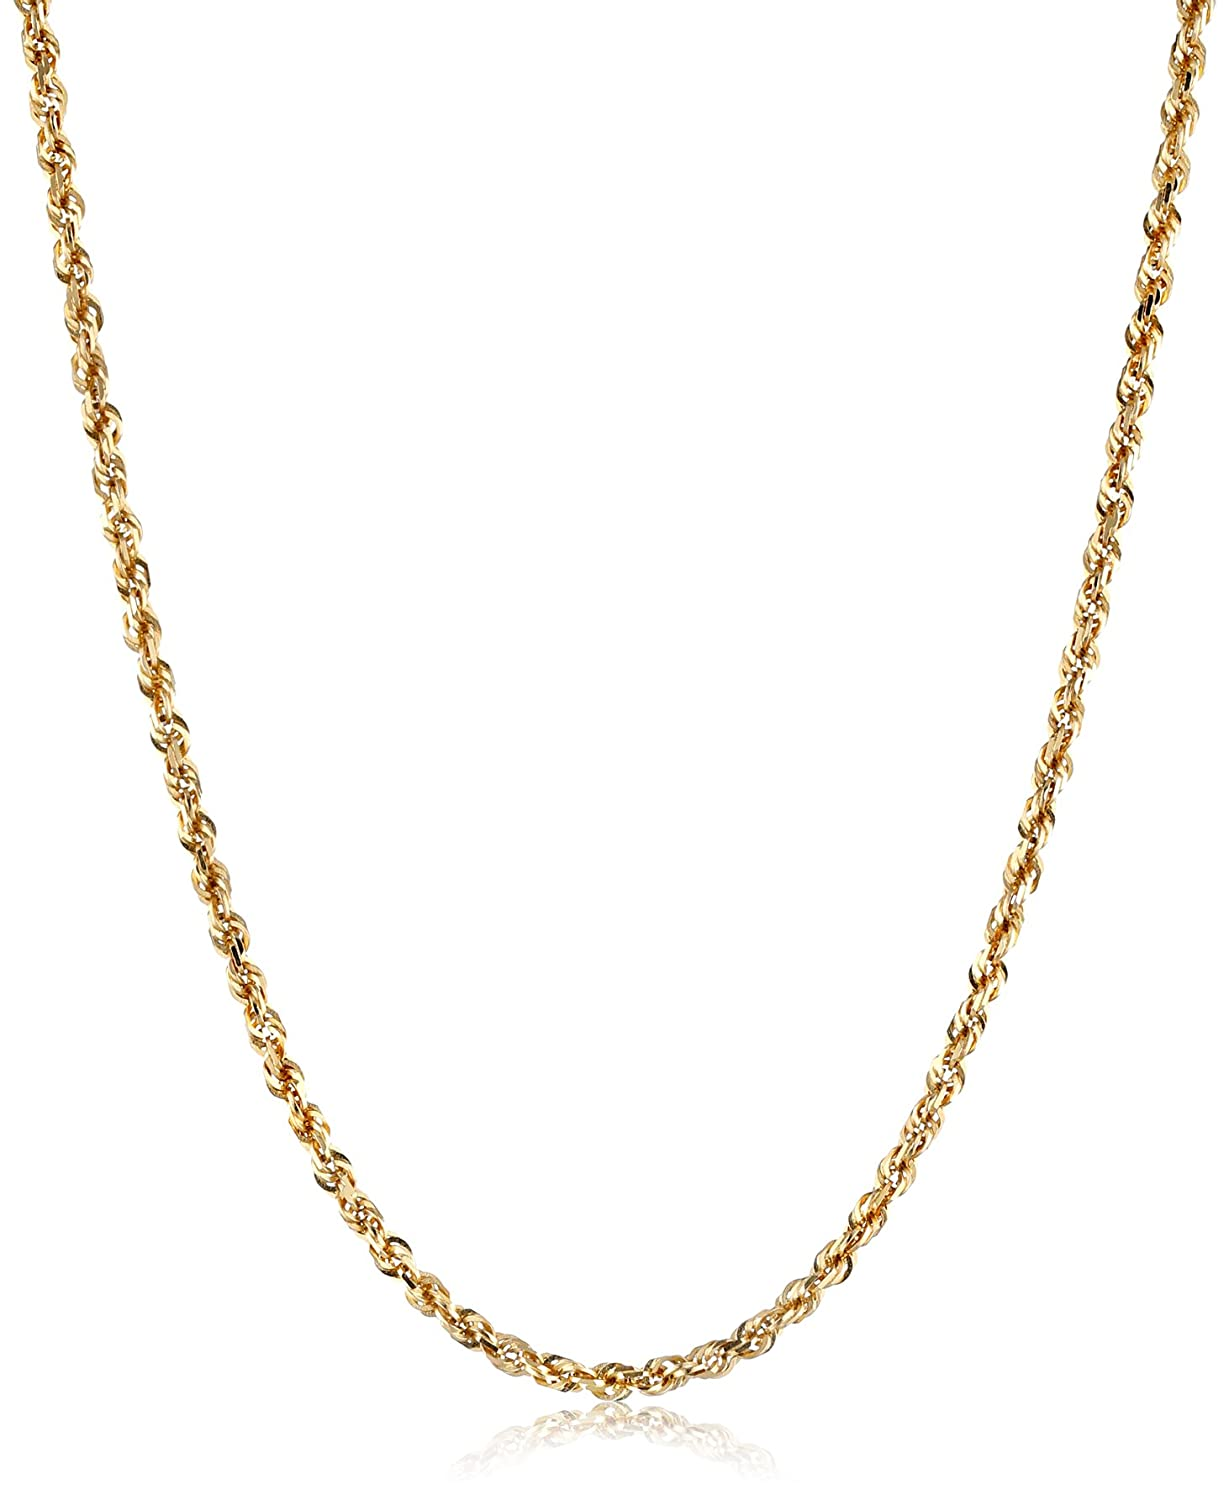 gold karat chain yellow rope newburysonline chains ml inch ladies necklace grams